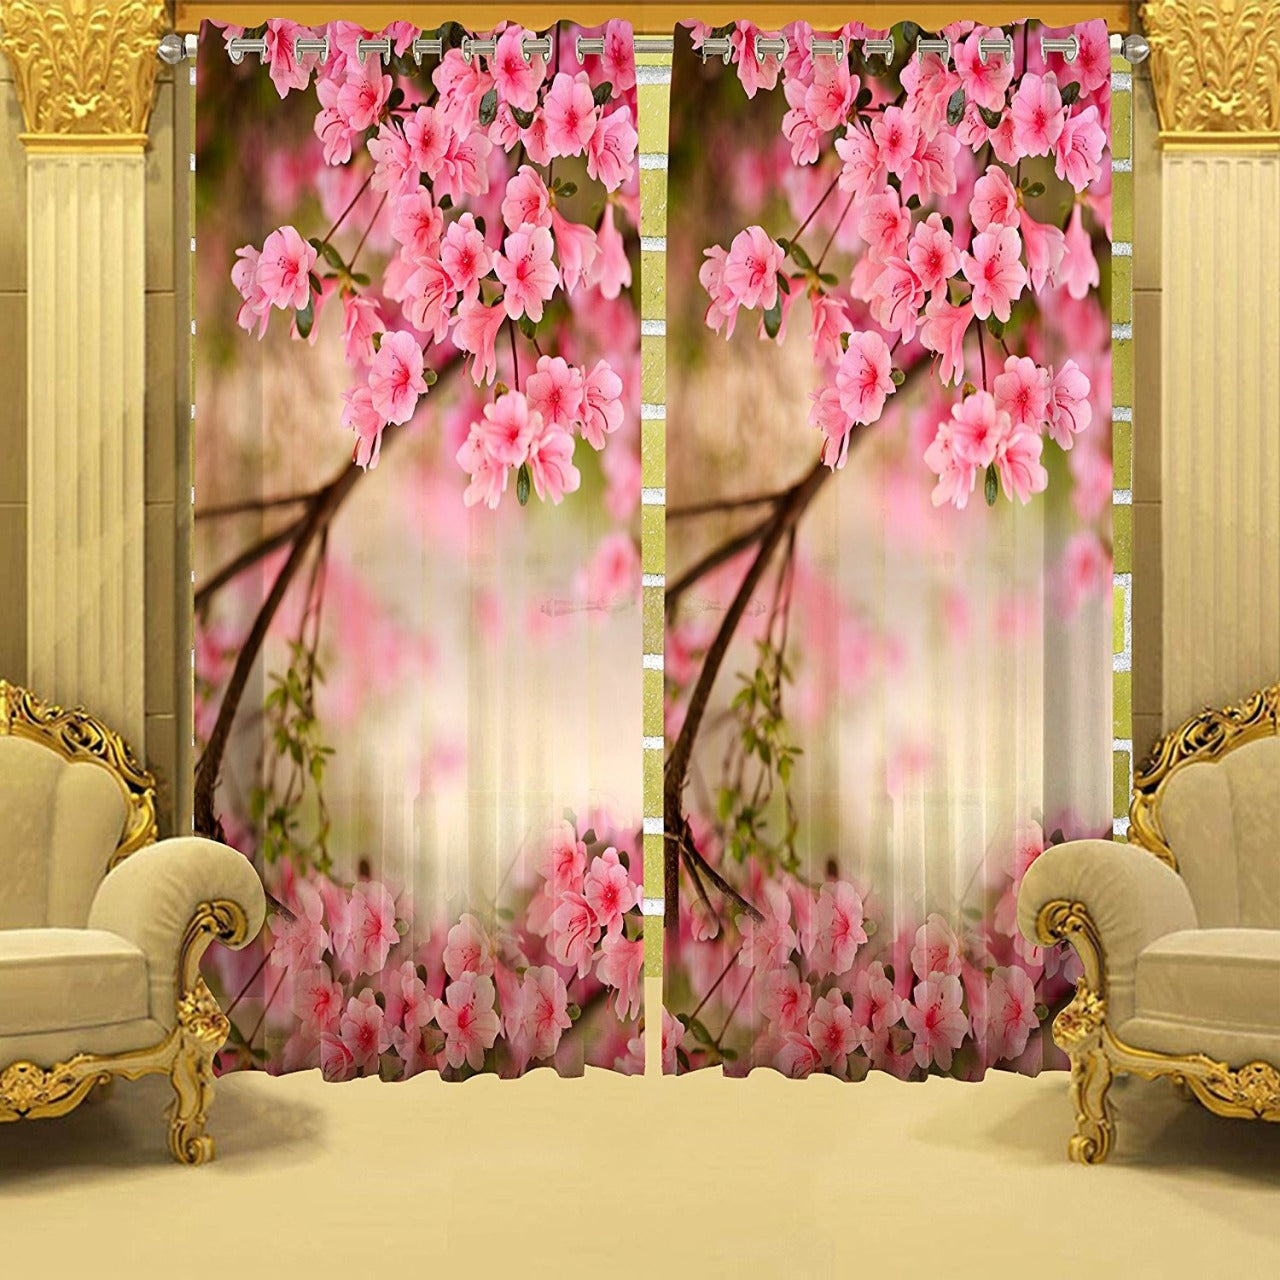 Digital Heavy Long Crush Curtains - World of Pink Flowers